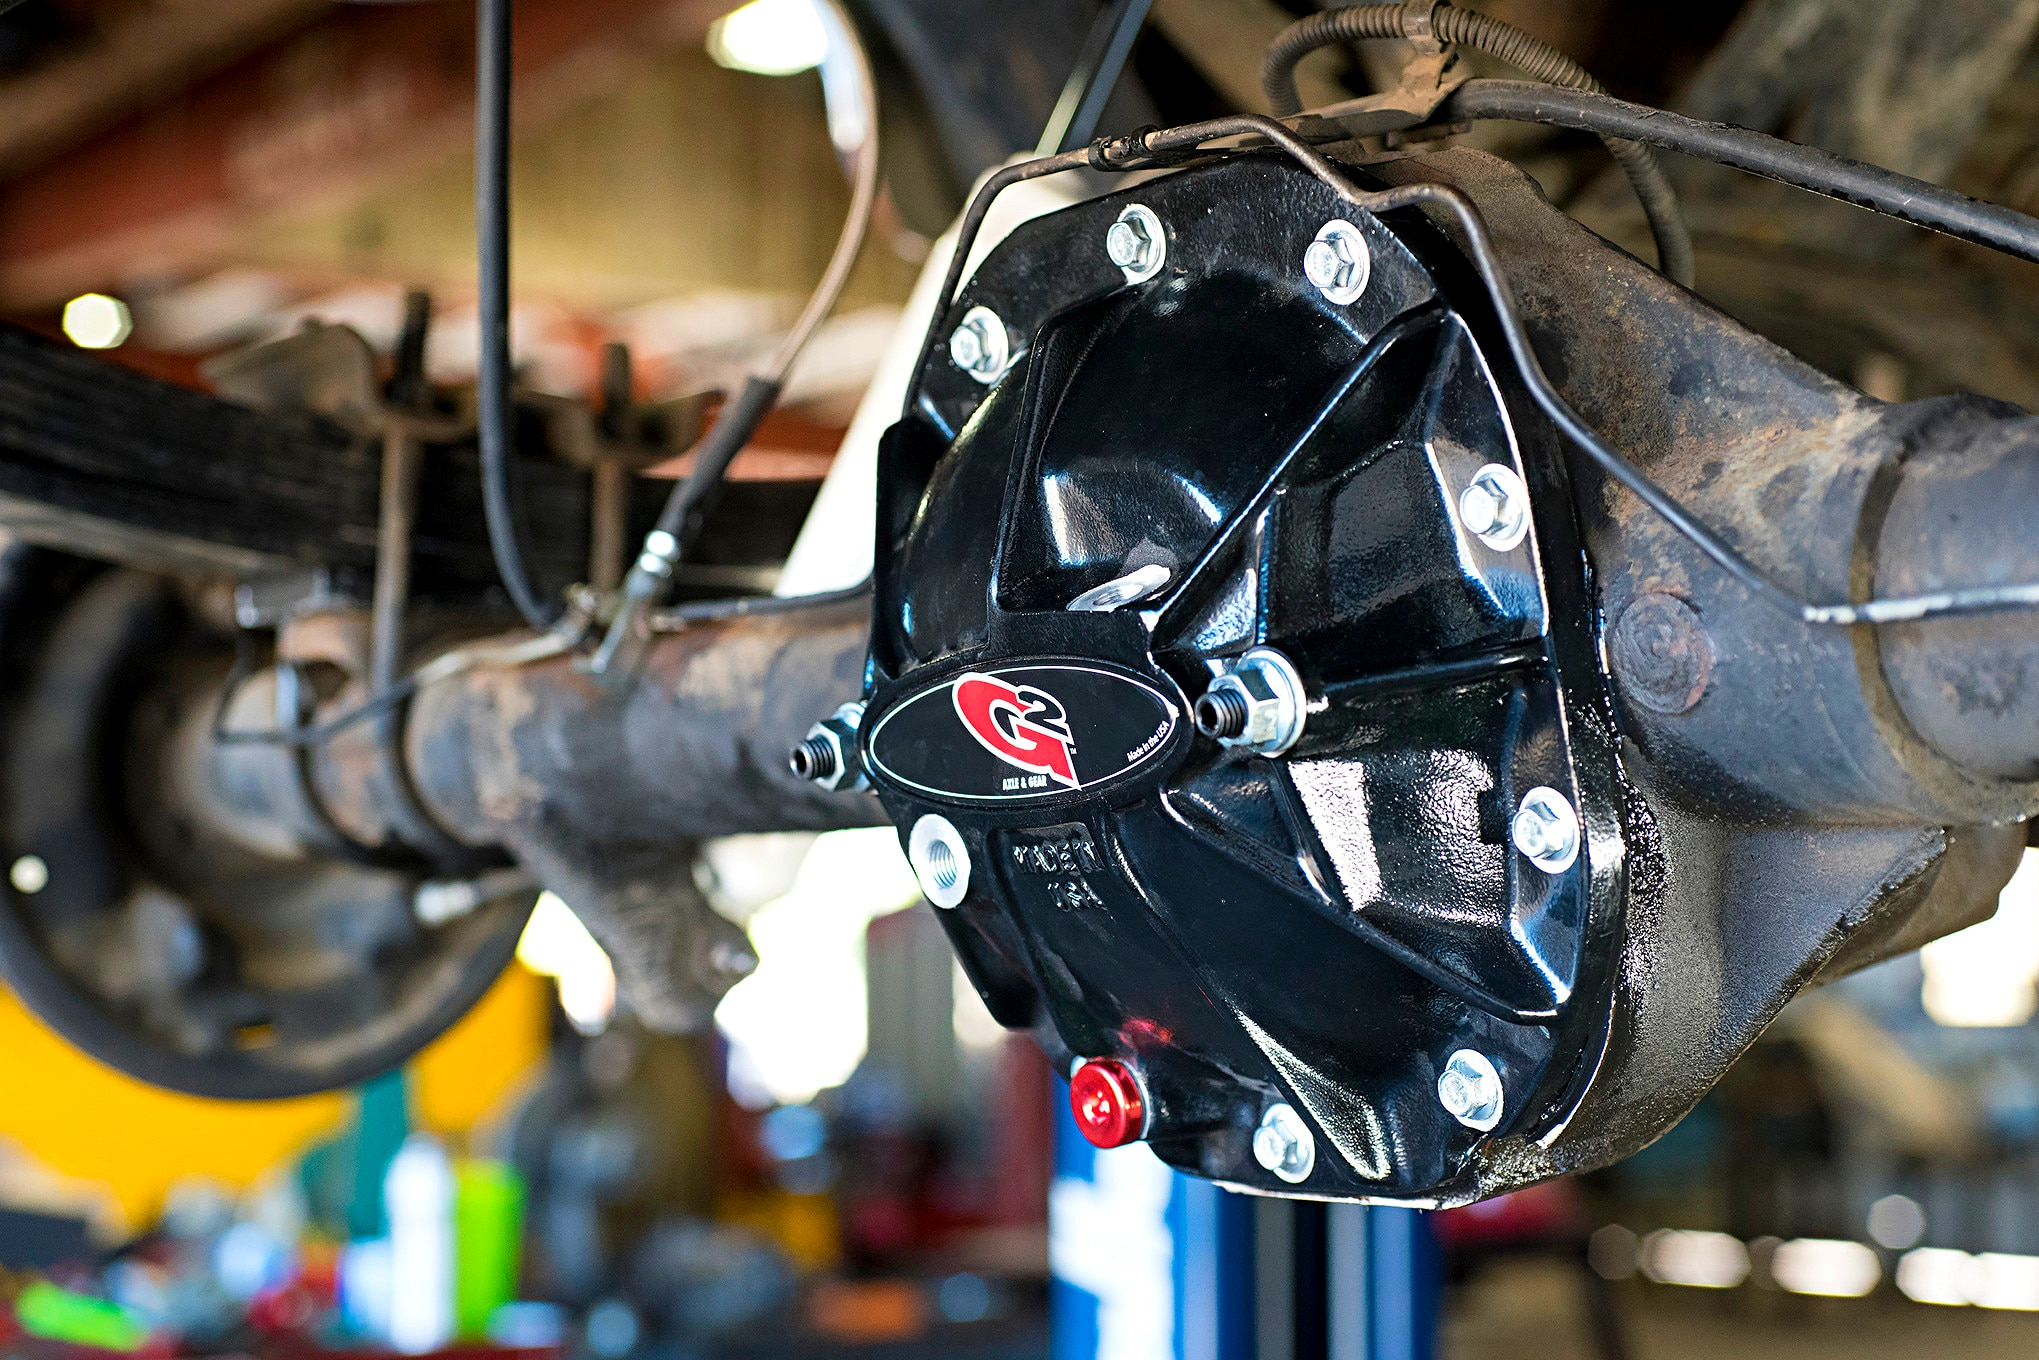 The rebuilt 8.8-inch rearend is lookin' good. It has the correct gearing and new parts to make it both durable and a good performance upgrade for our 5.0L Bronco.